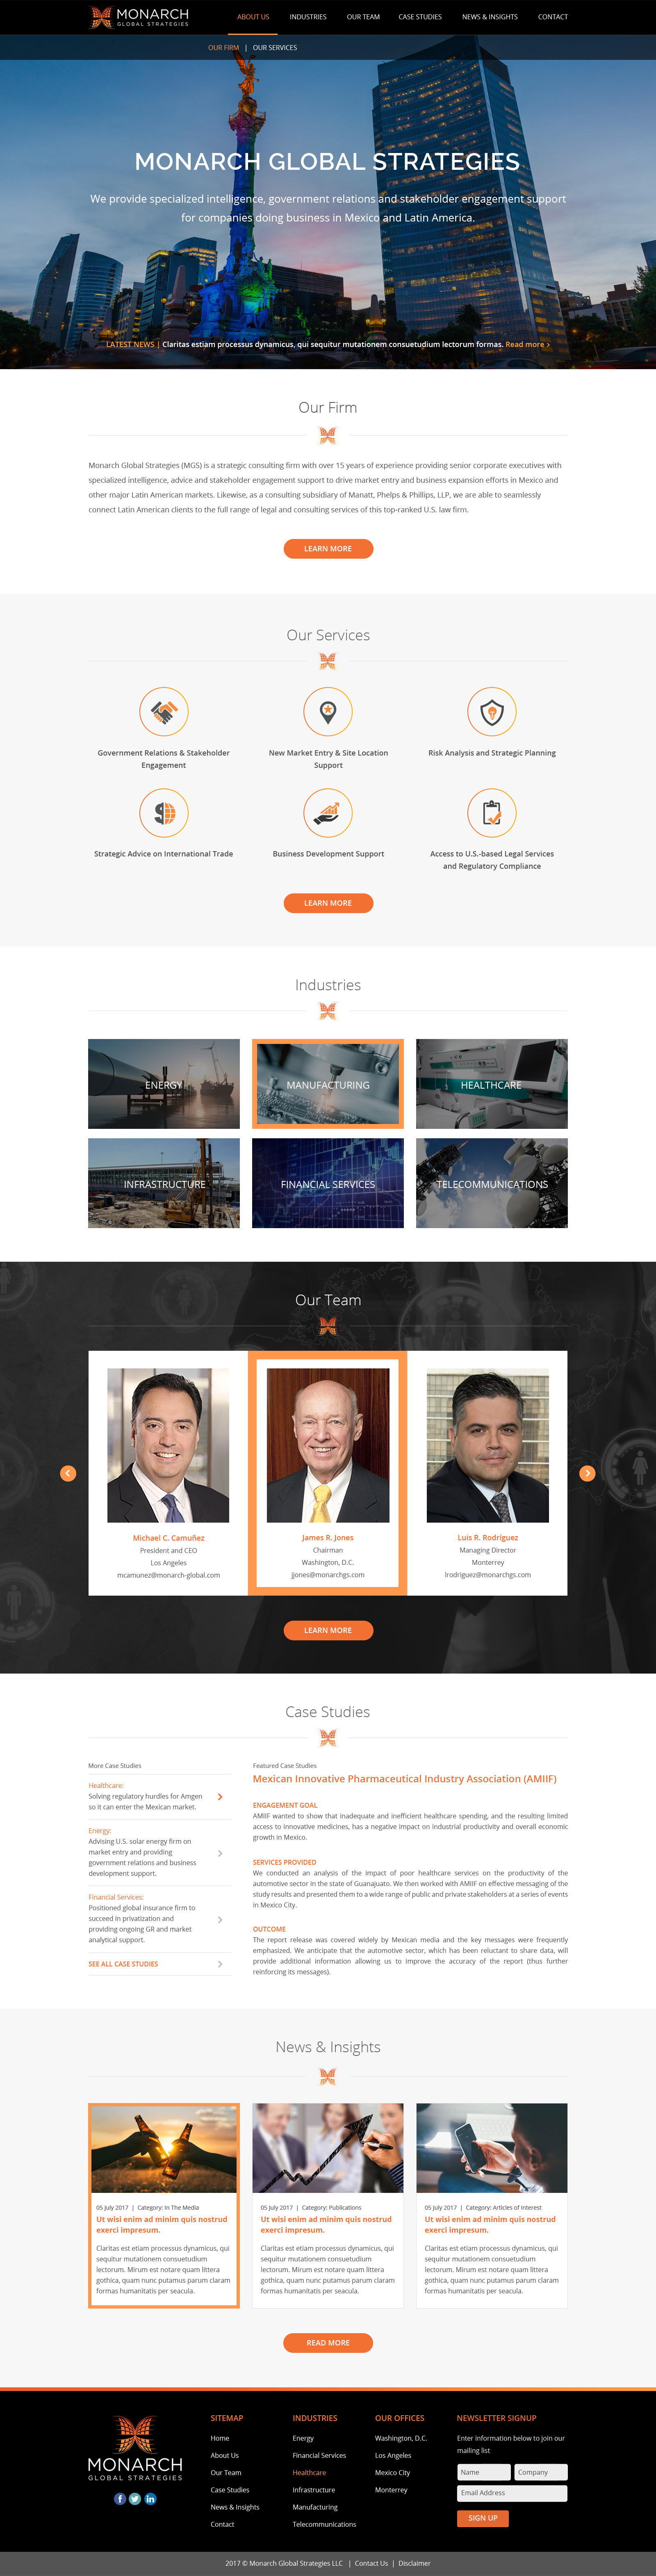 Design rebranded website for U.S.-Mexico consulting business